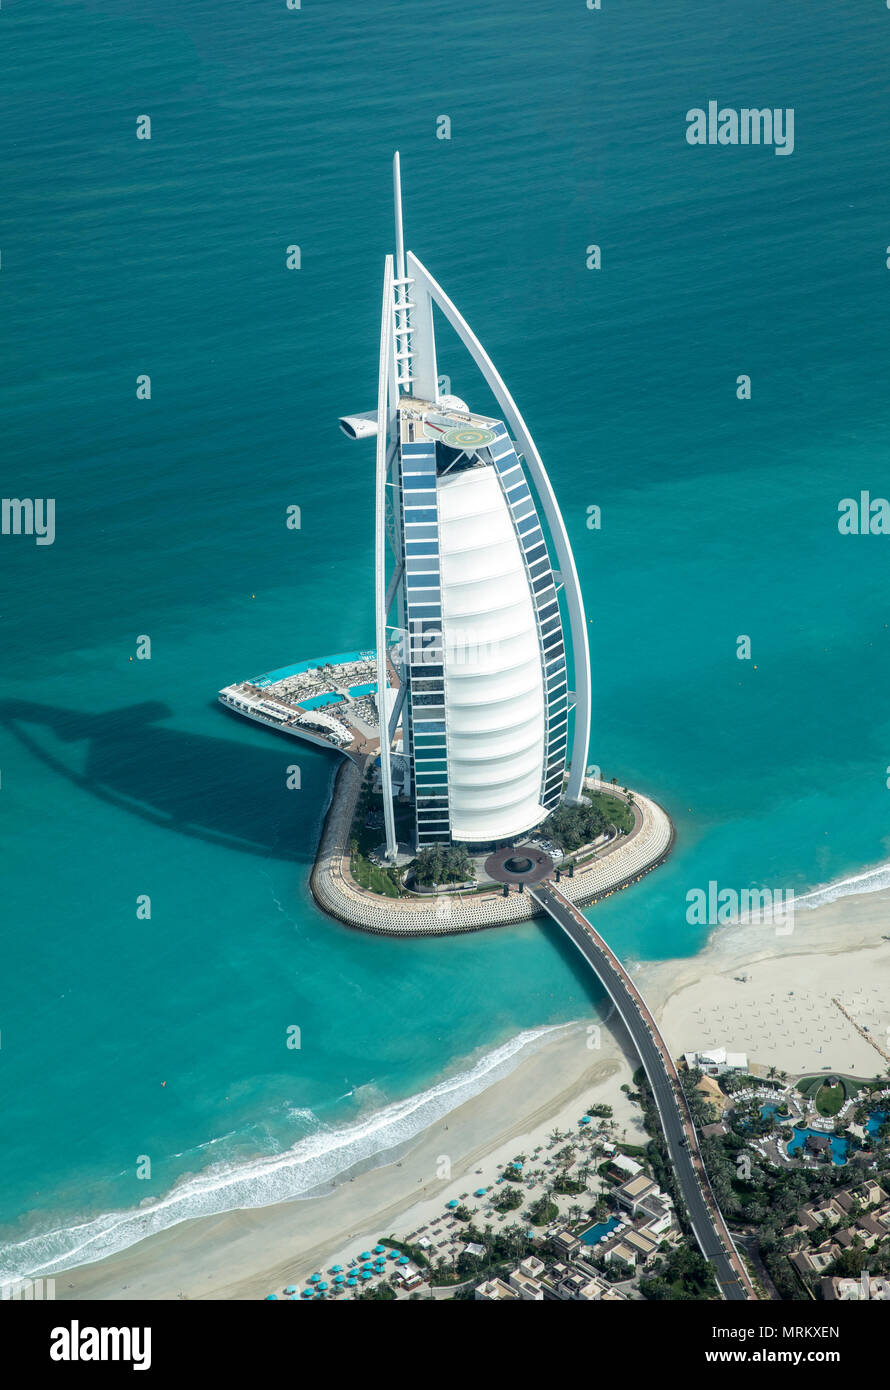 Dubai, United Arab Emirates, 18th May, 2018: aerial view of world most highly rated hotel Burj Al Arb - Stock Image